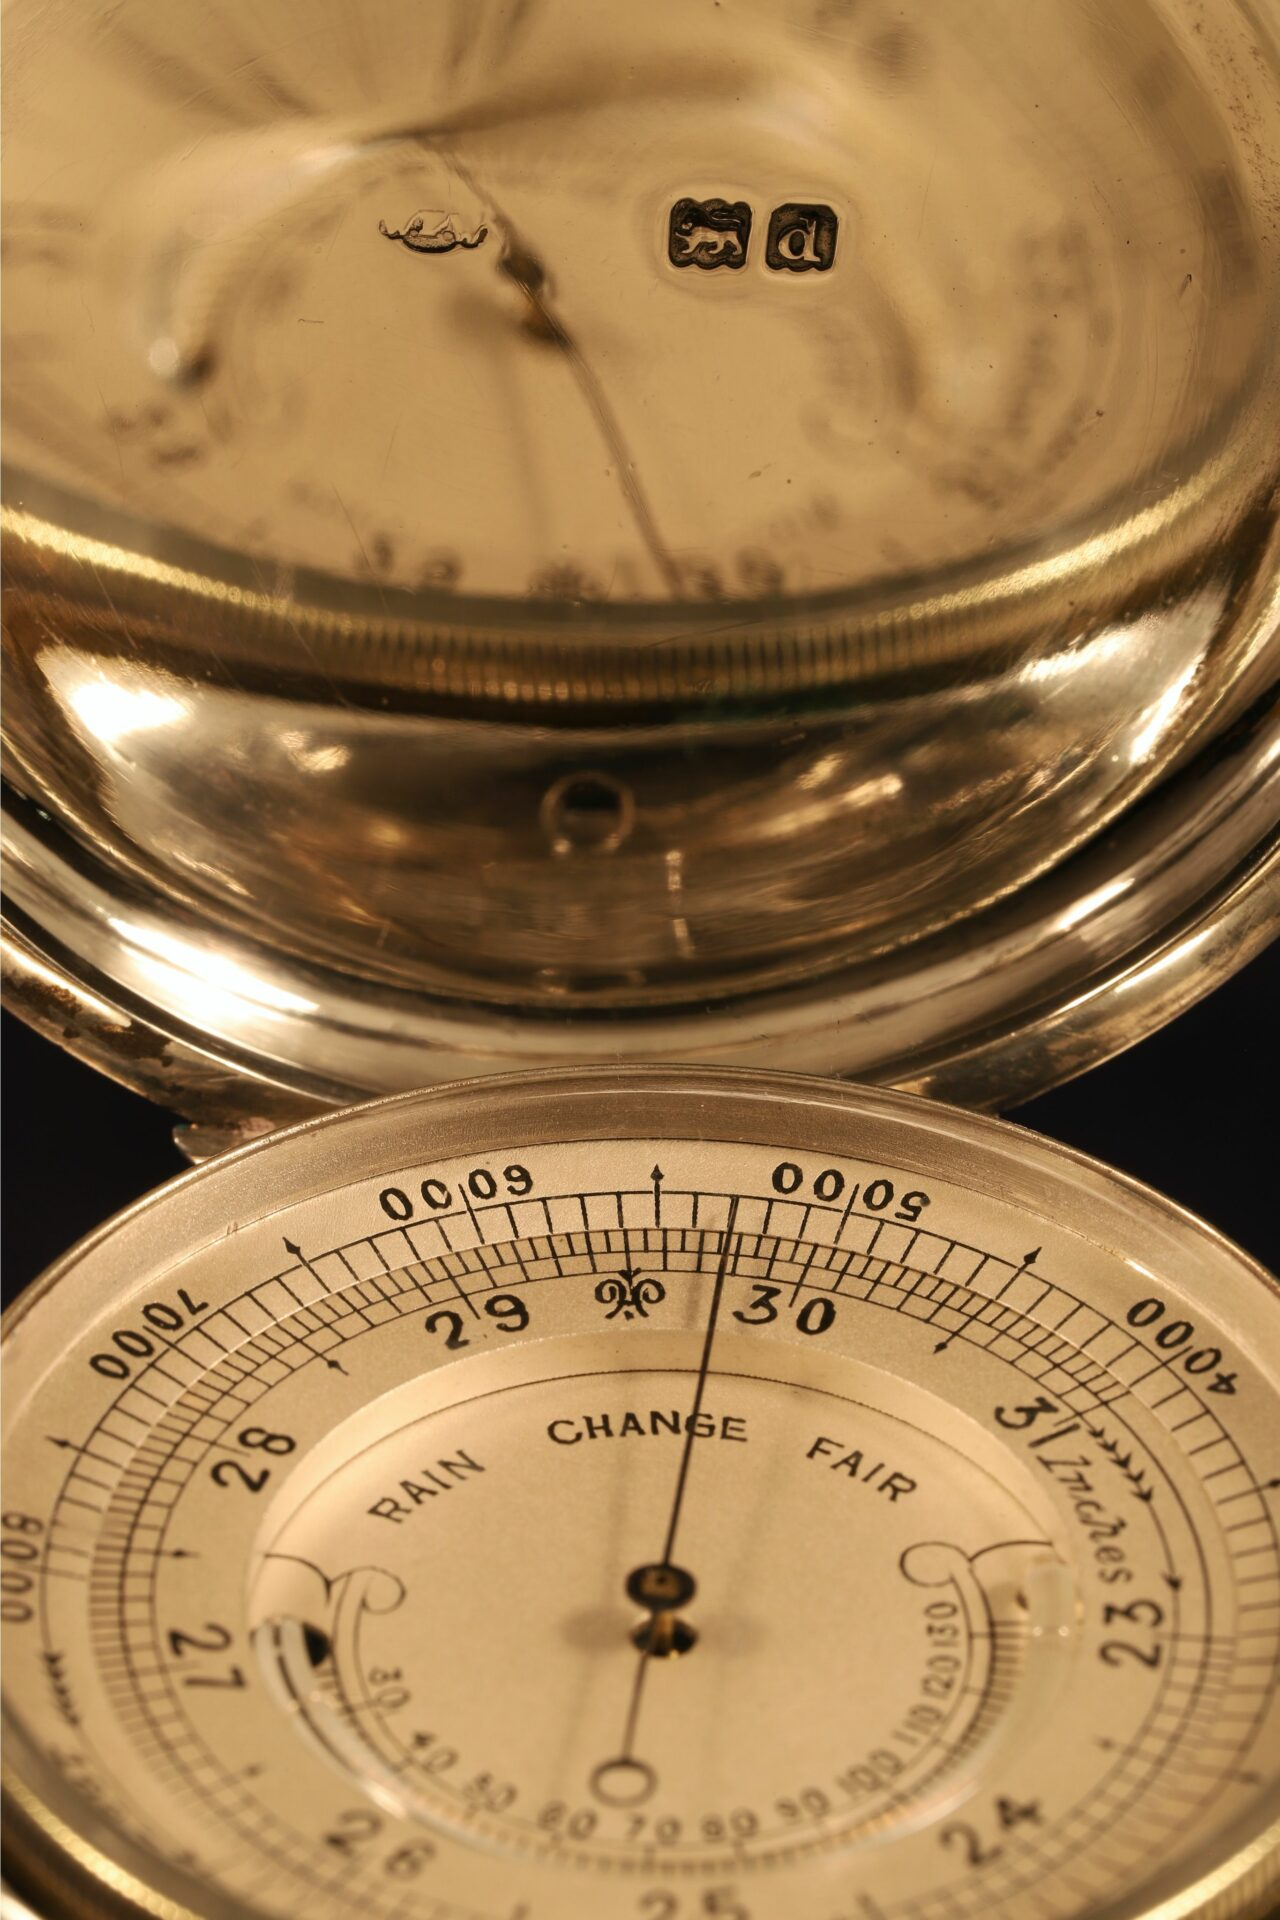 Image of Silver Pocket Barometer Compendium by Thornhill c1899 showing dial and hallmarks